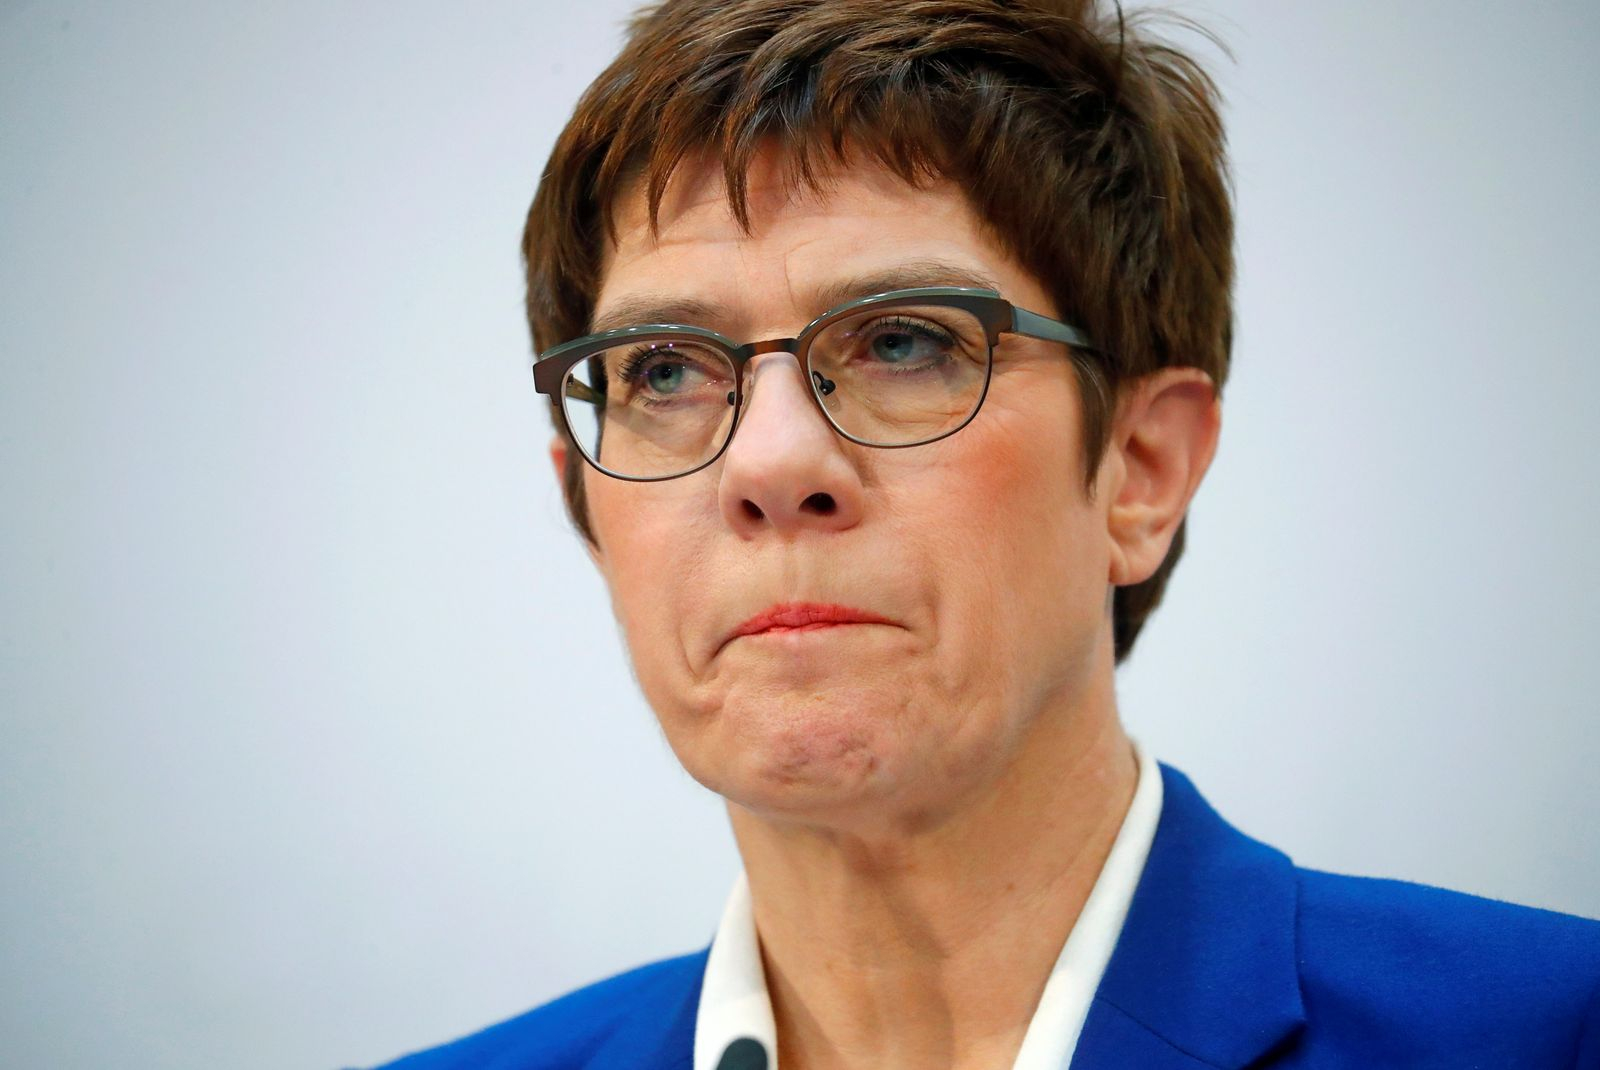 News conference after CDU board meeting in Berlin